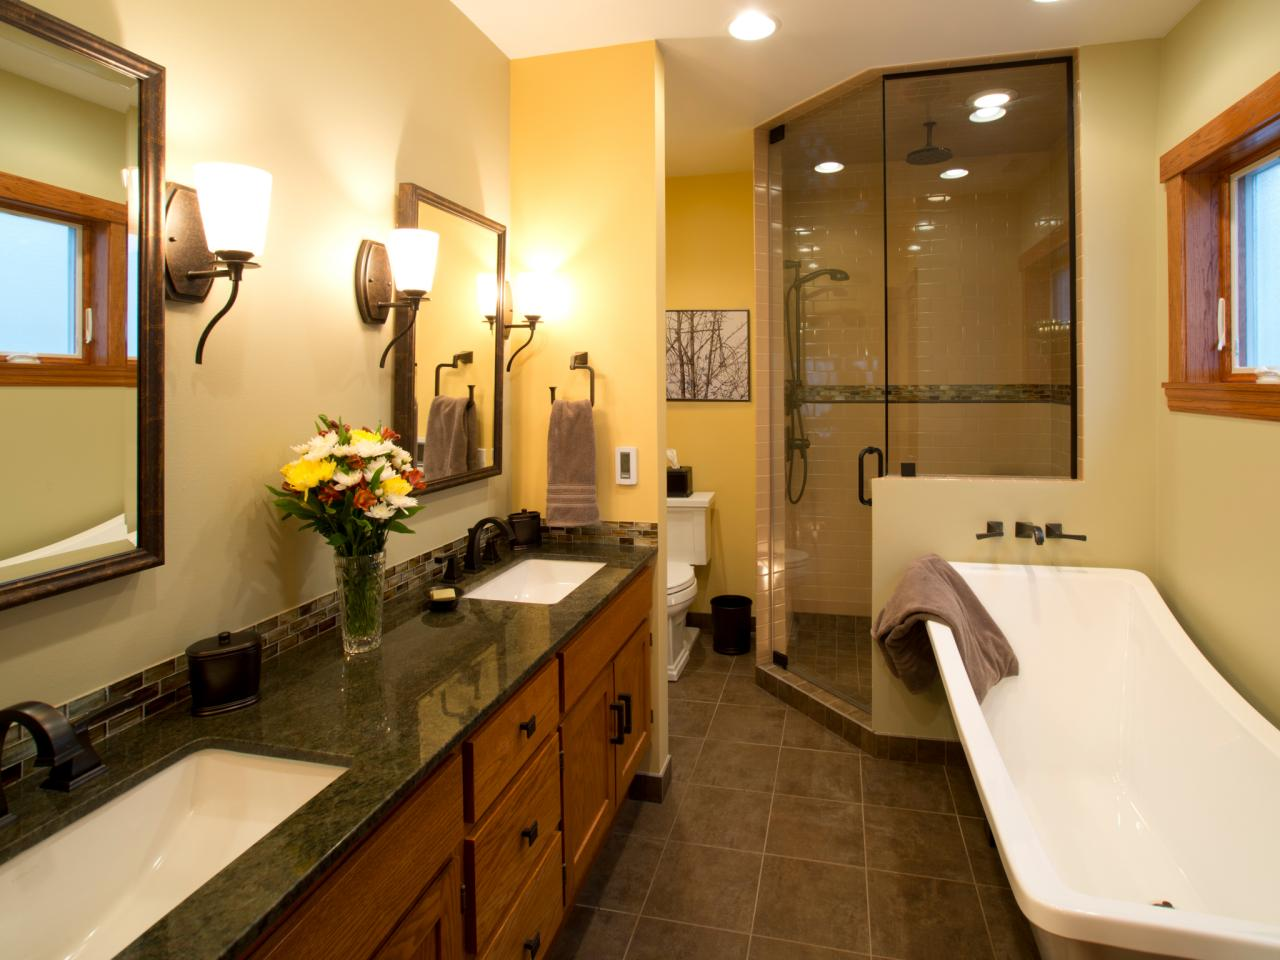 Small bathroom decorating ideas bathroom ideas designs for Bathroom designs hgtv